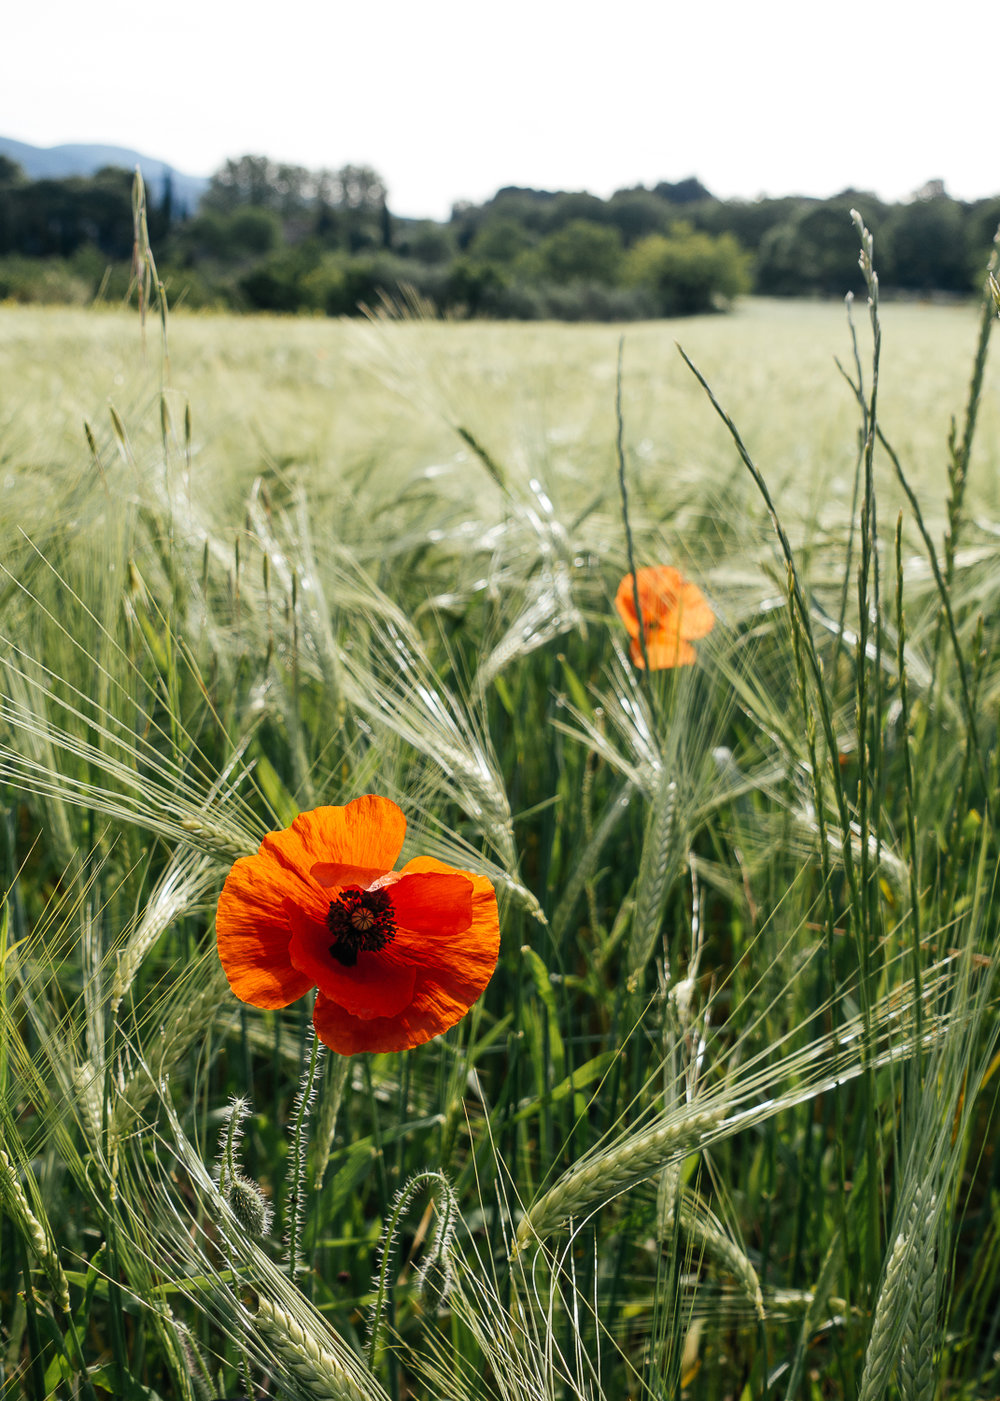 Red poppies line the wheat fields.